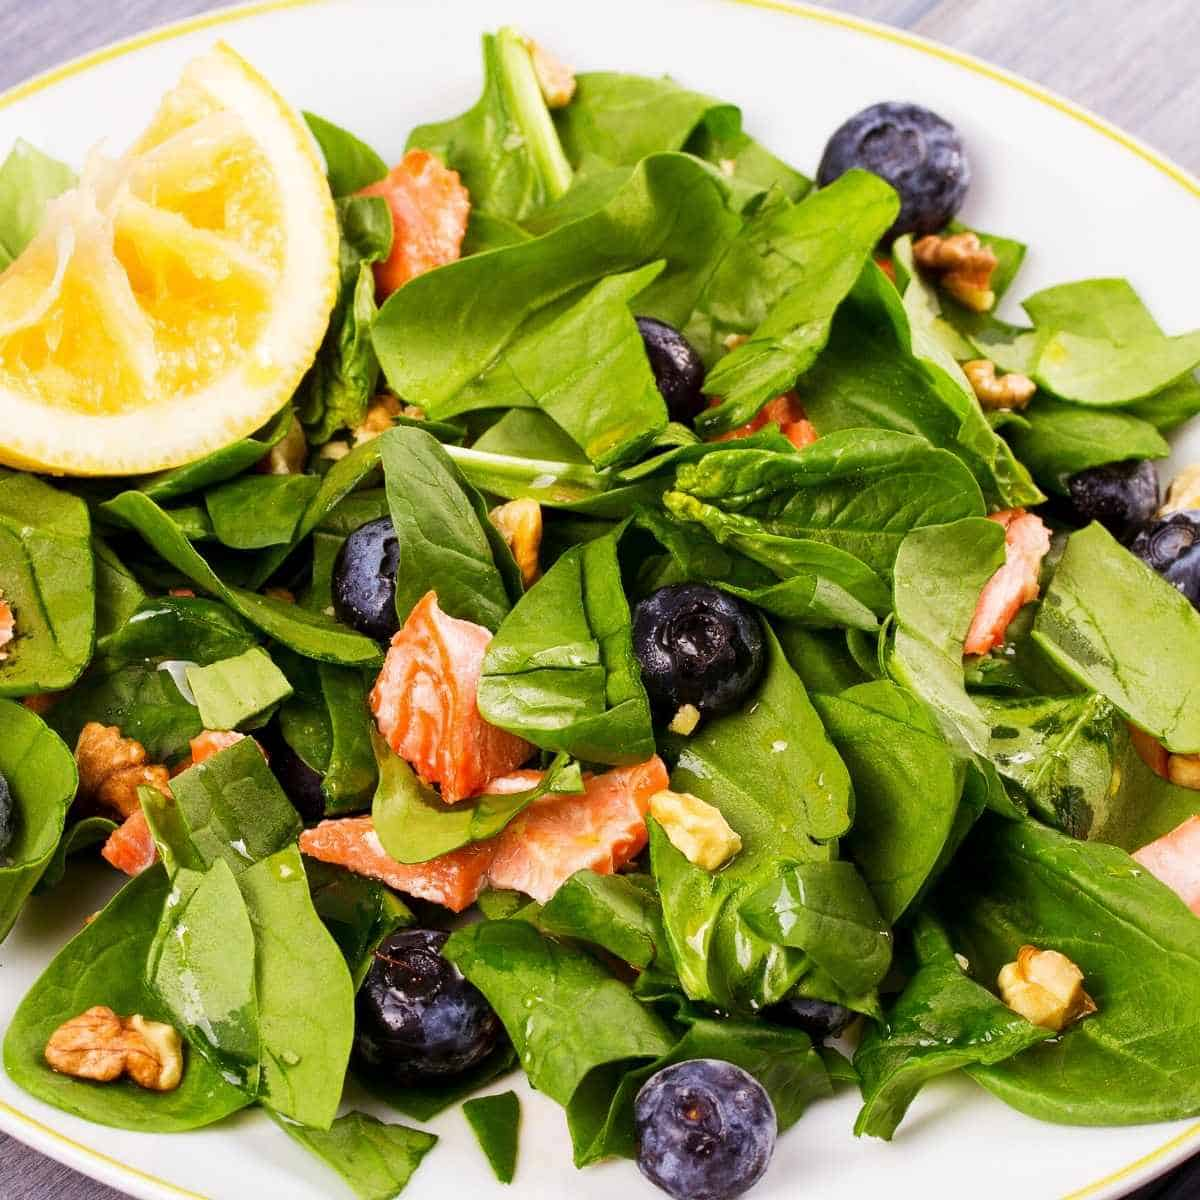 spinach salmon and bluberry salad - How to Fix Whole Body Aches on Keto: Advice from a Nutritionist